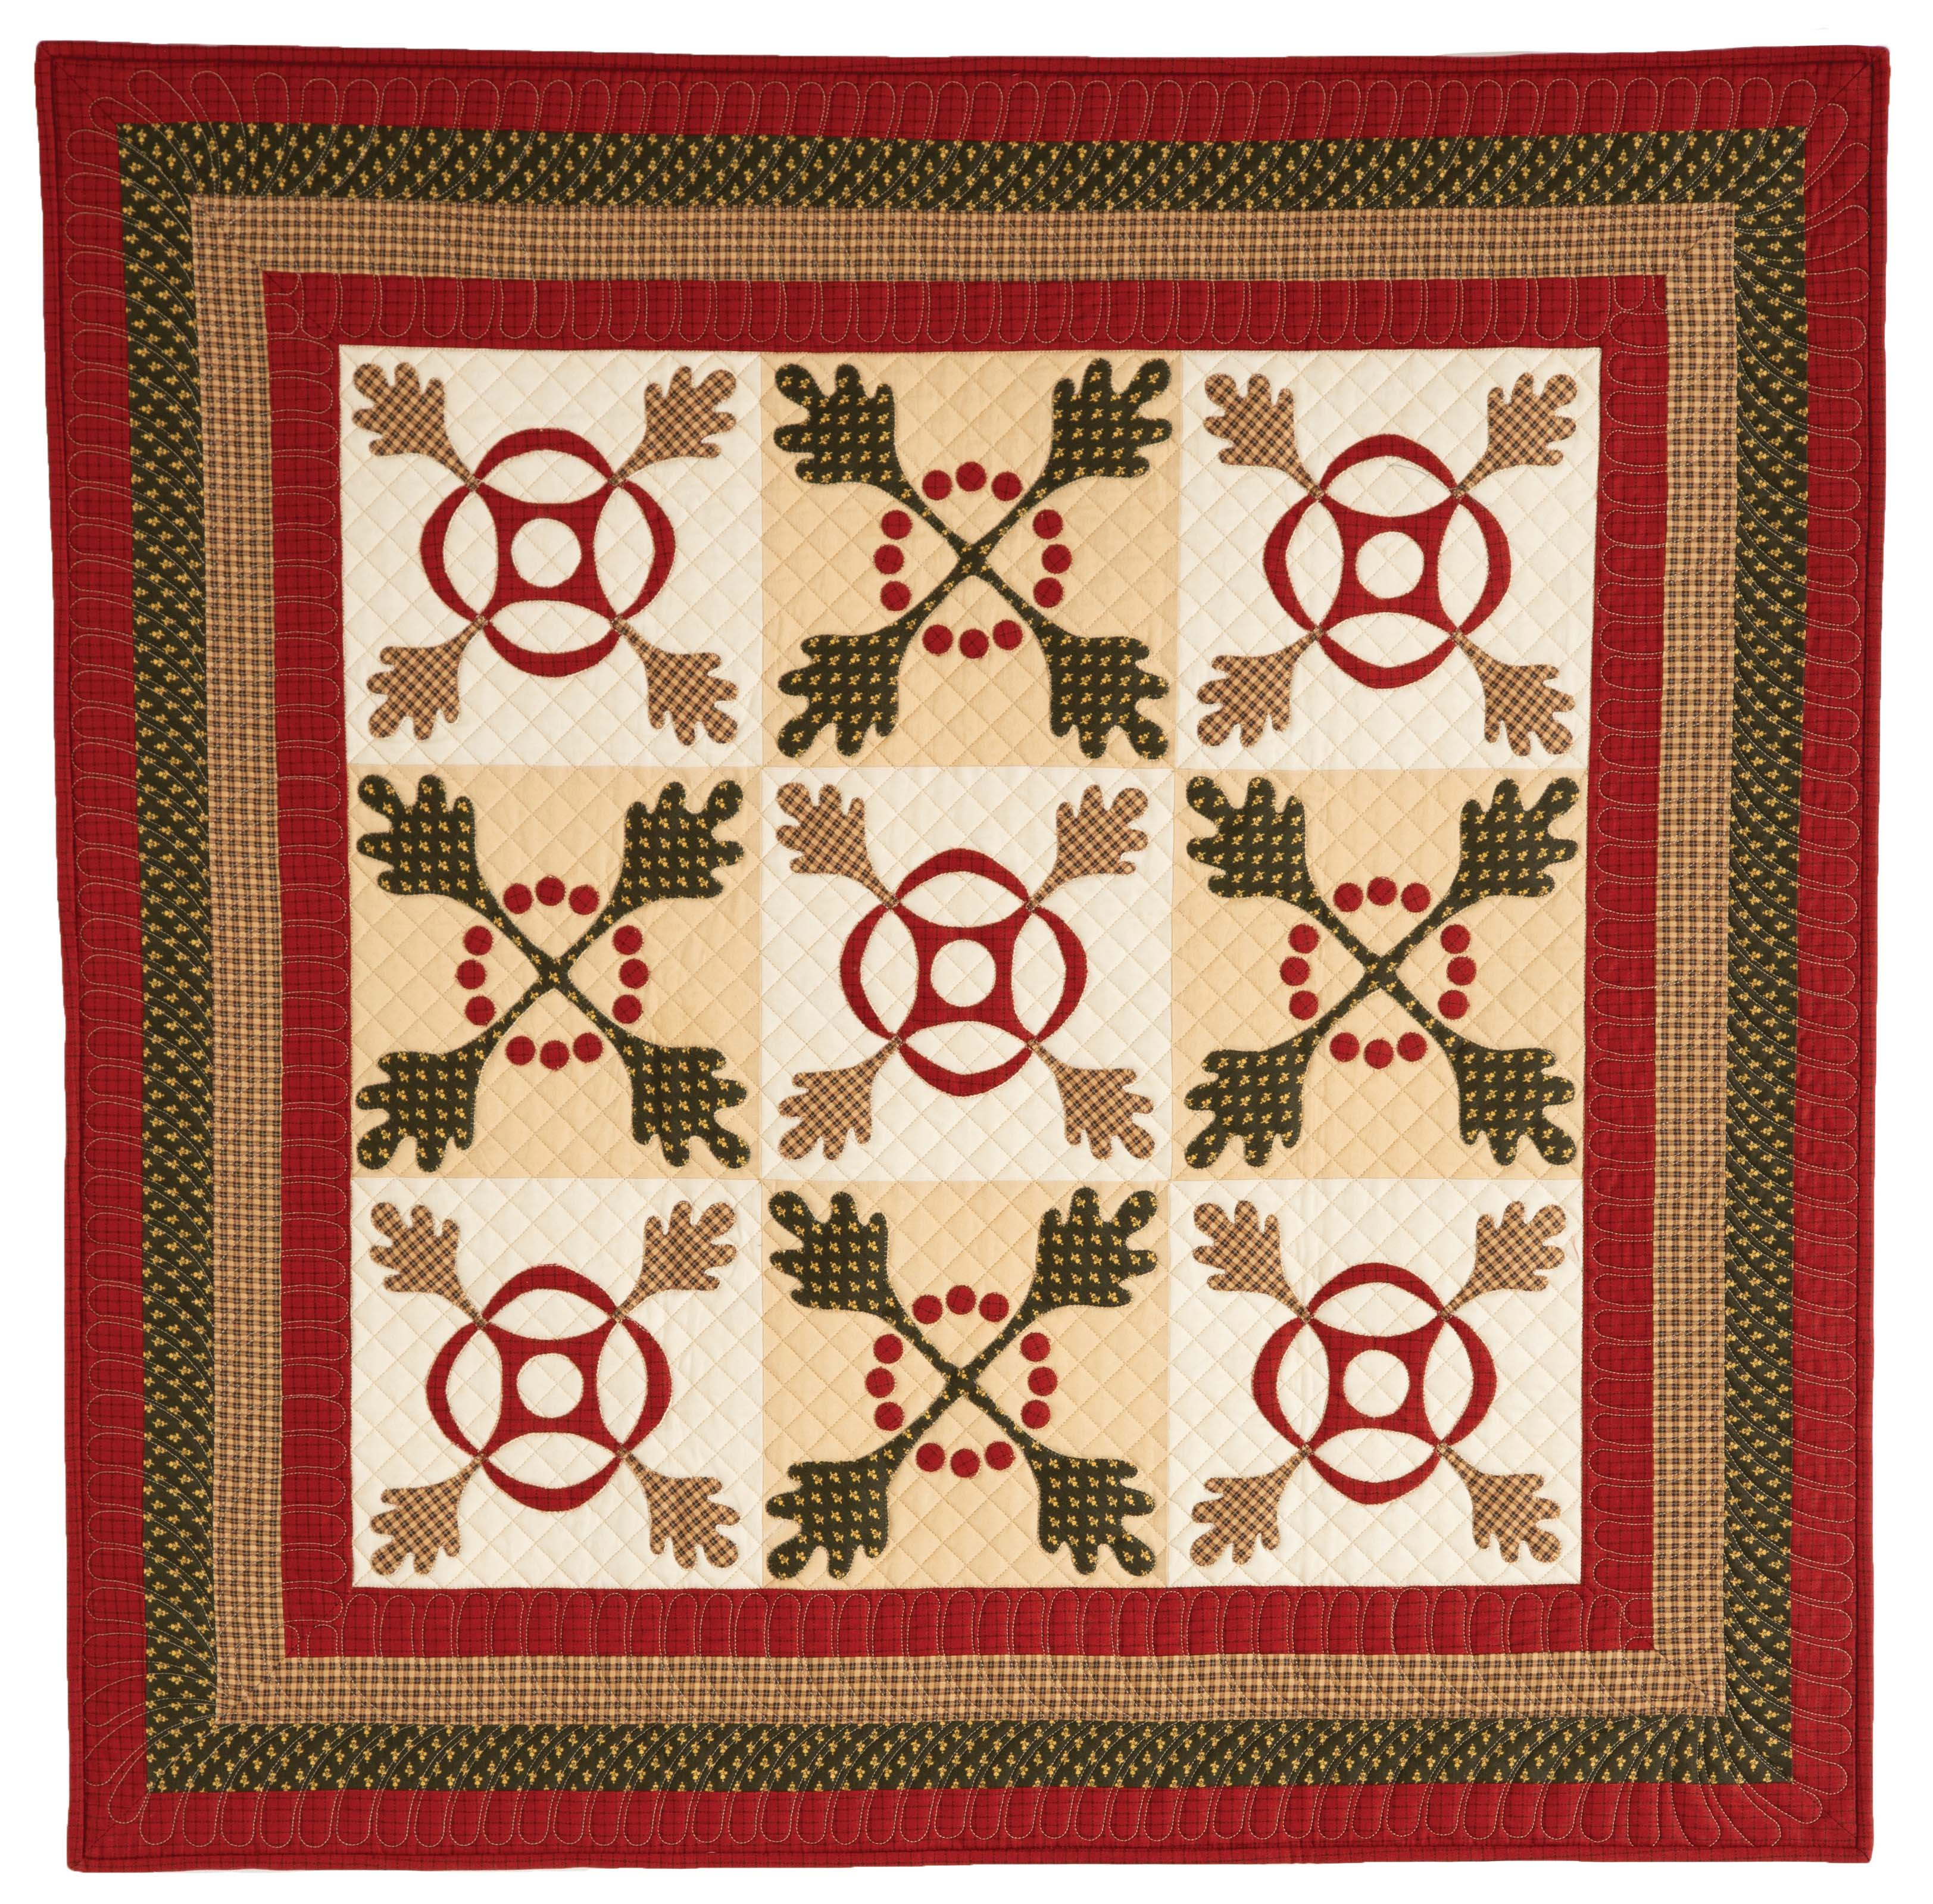 quilt-strength-and-glory-flat